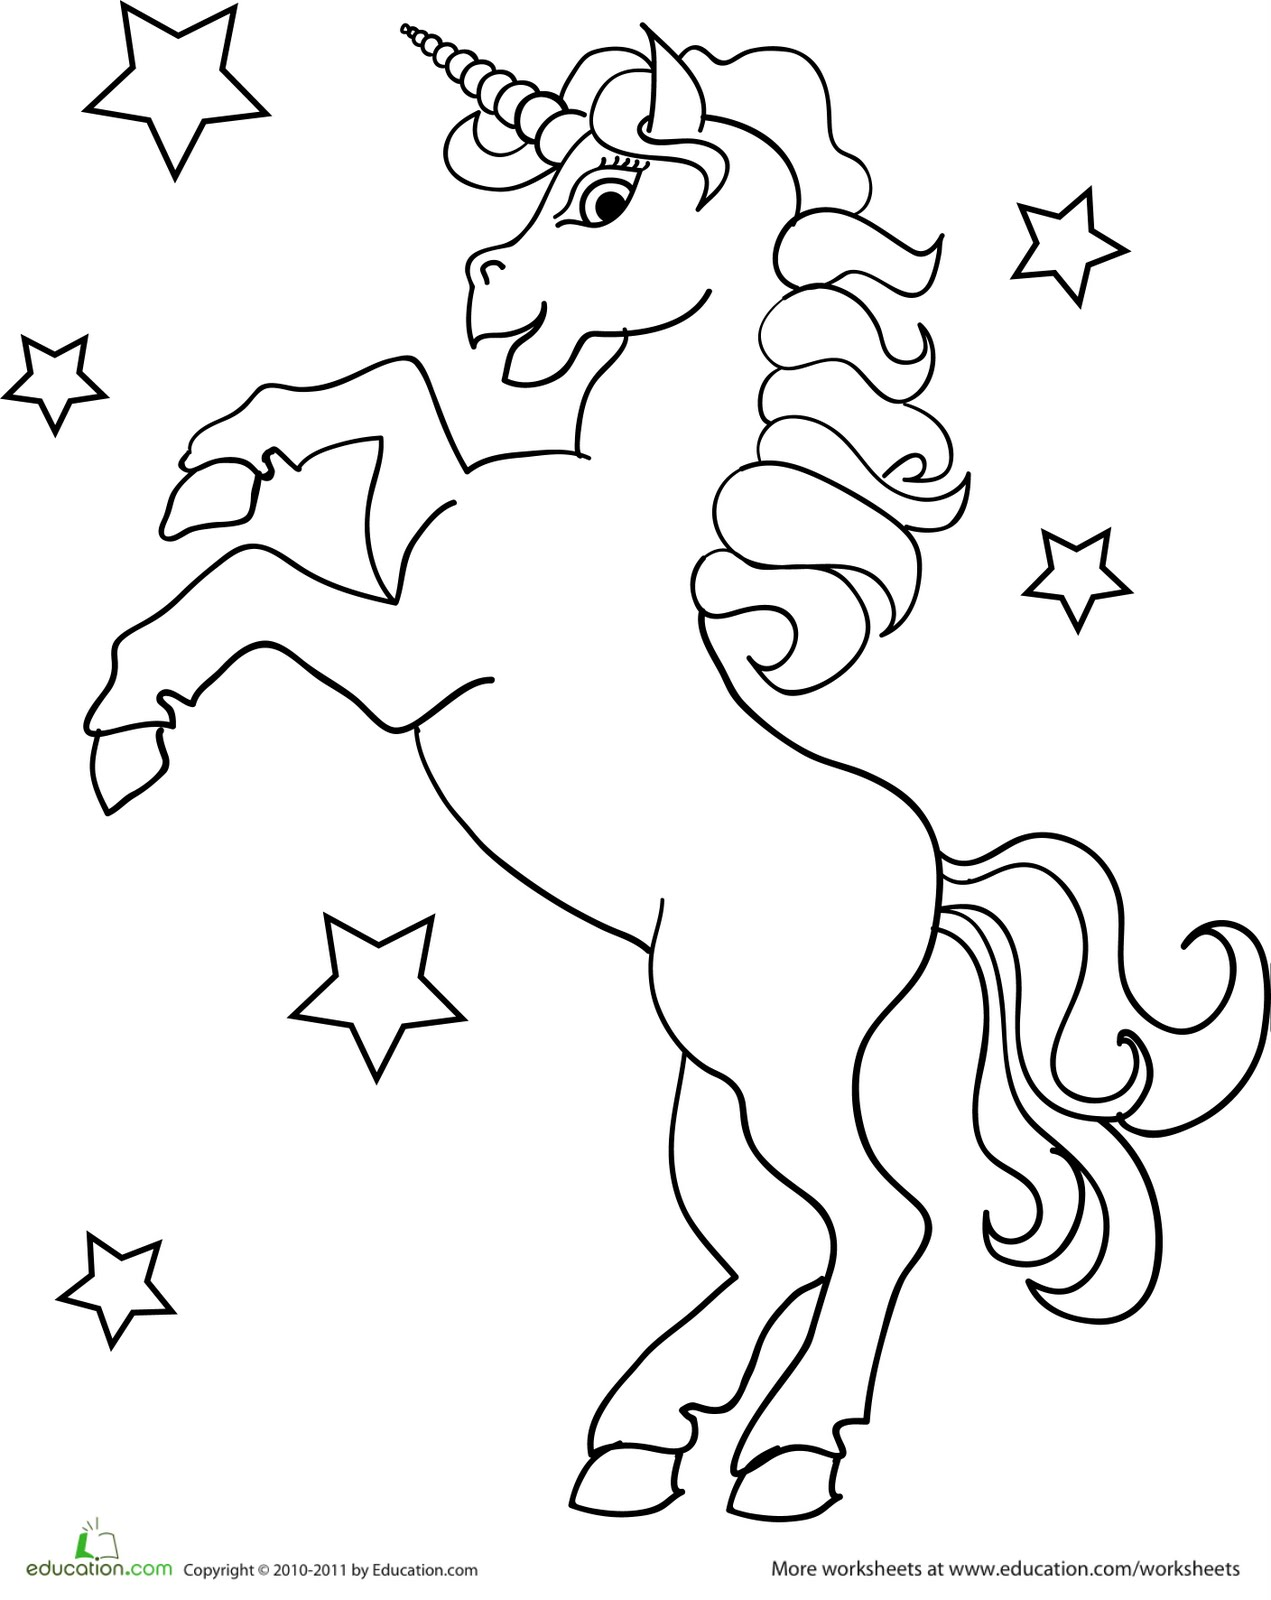 unicorn print out flying unicorn coloring pages for kids unicorn out print